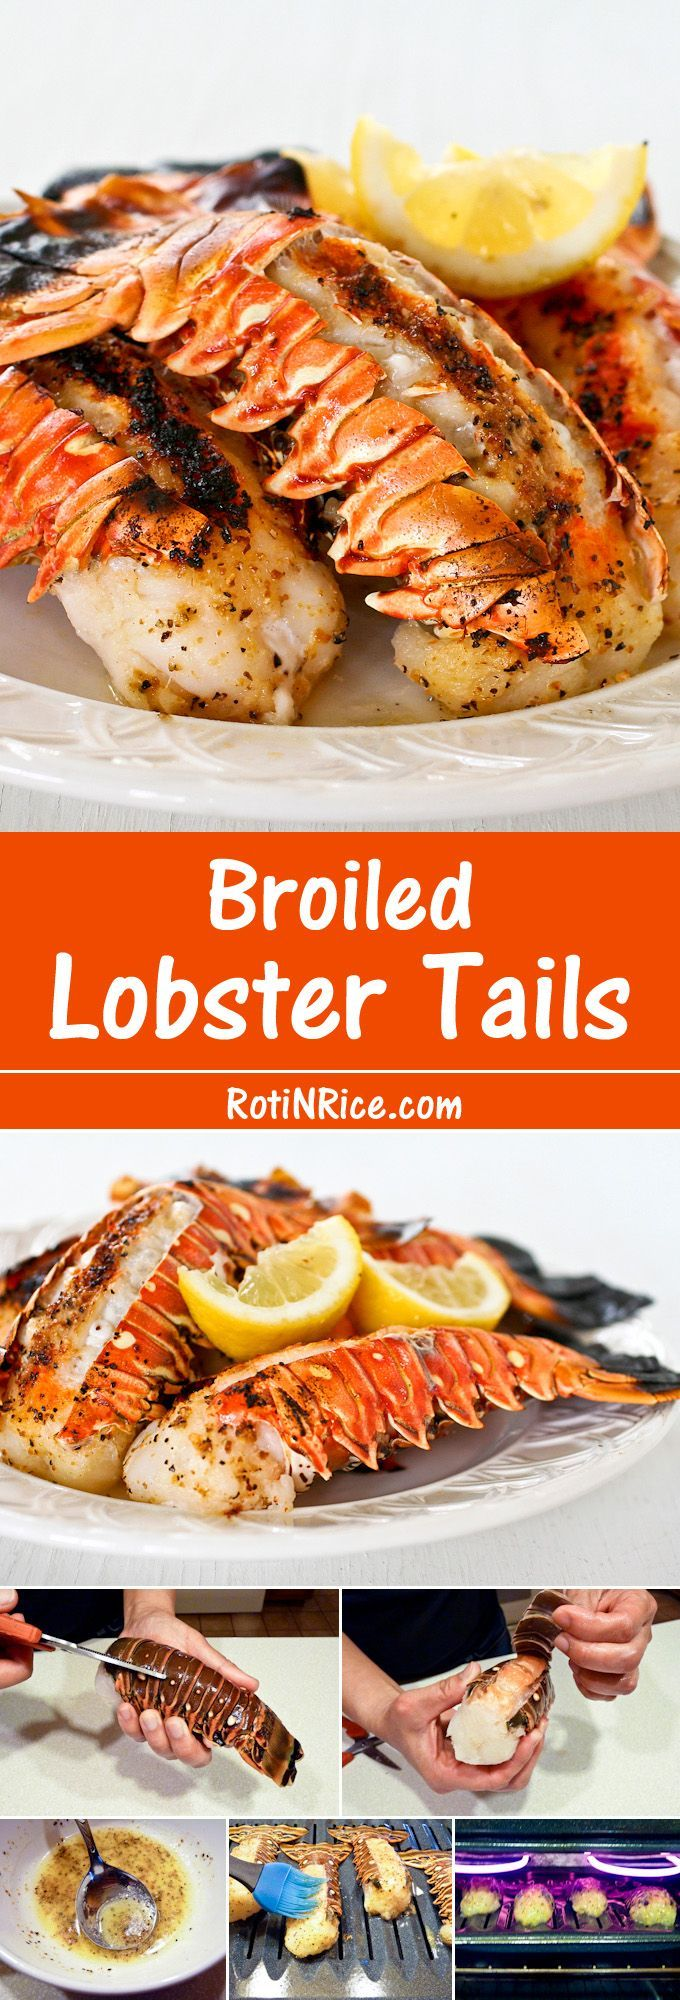 Broiled Lobster Tails - Flavored with lemon pepper butter for that special occasion. It is totally worth it!